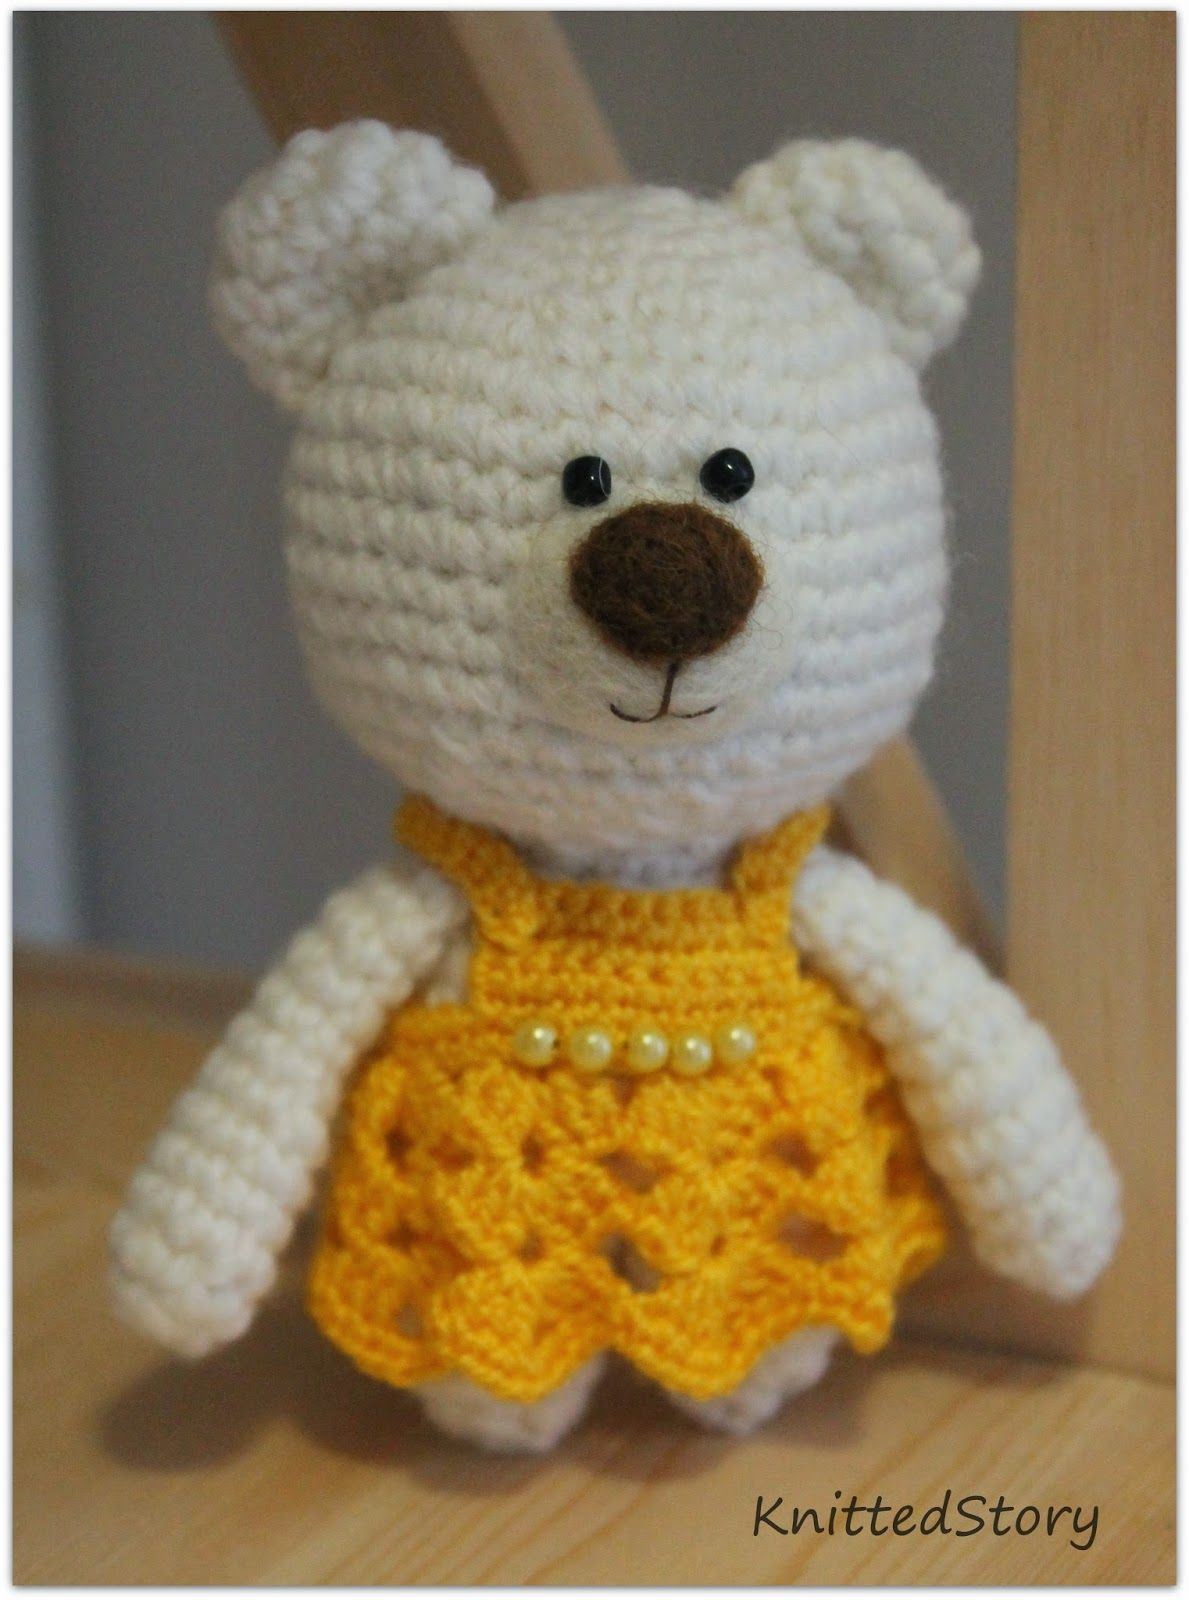 Knitted Story